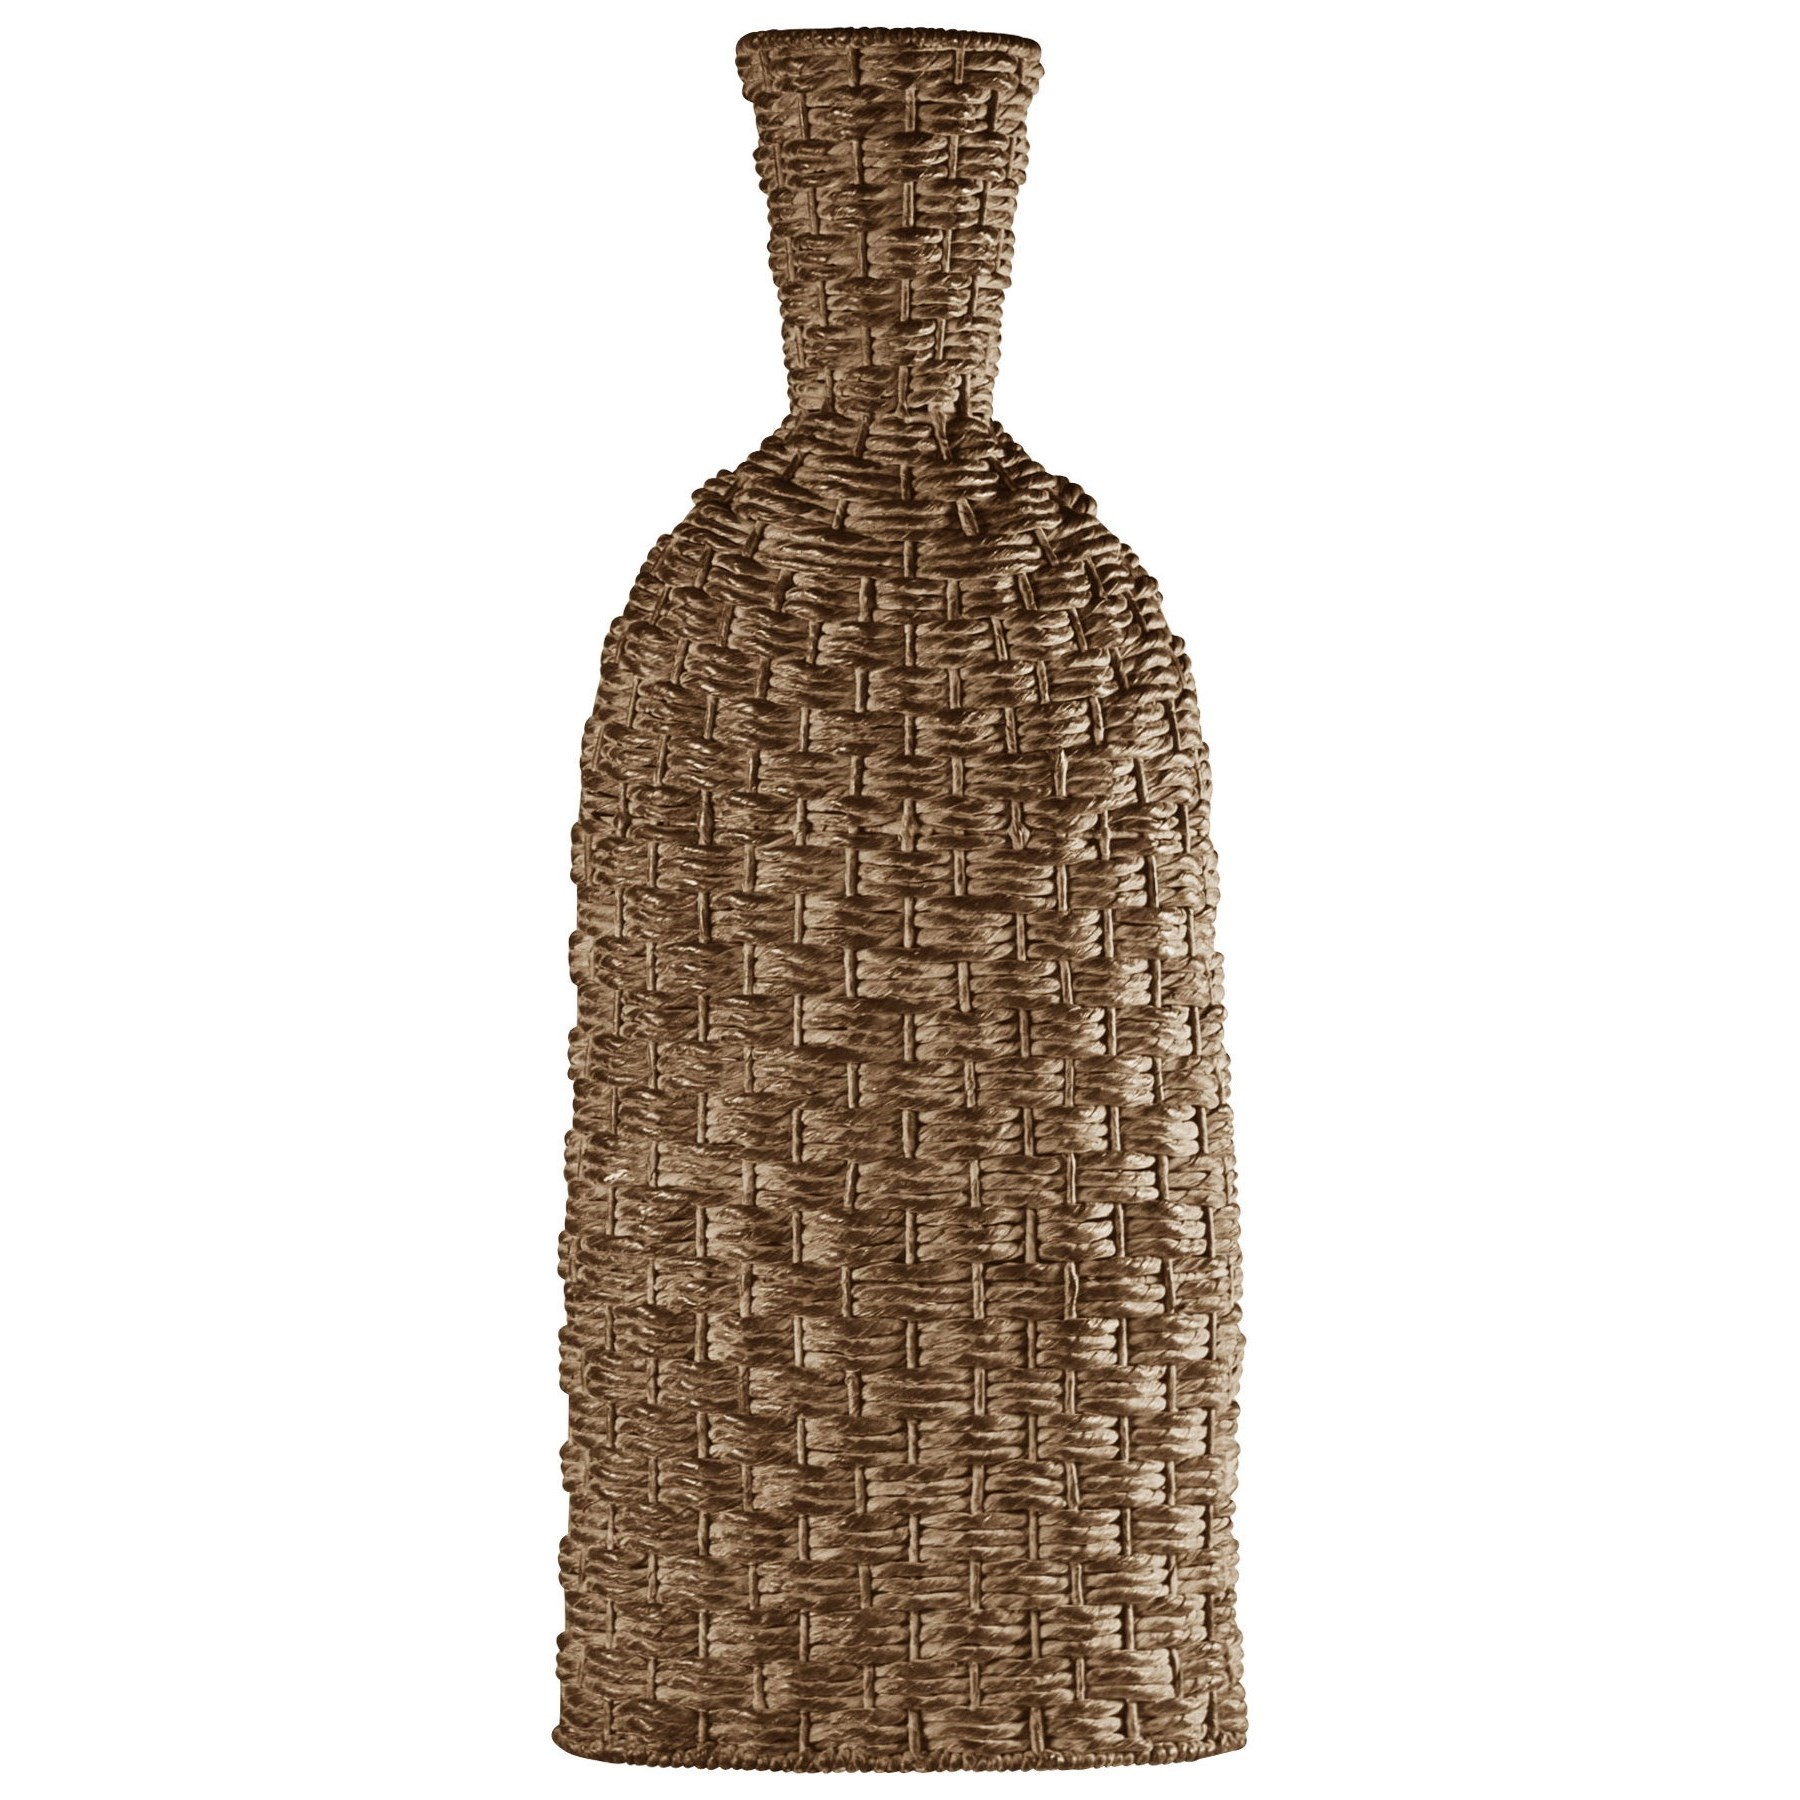 Accessories Woven Basket Vase by StyleCraft at Alison Craig Home Furnishings